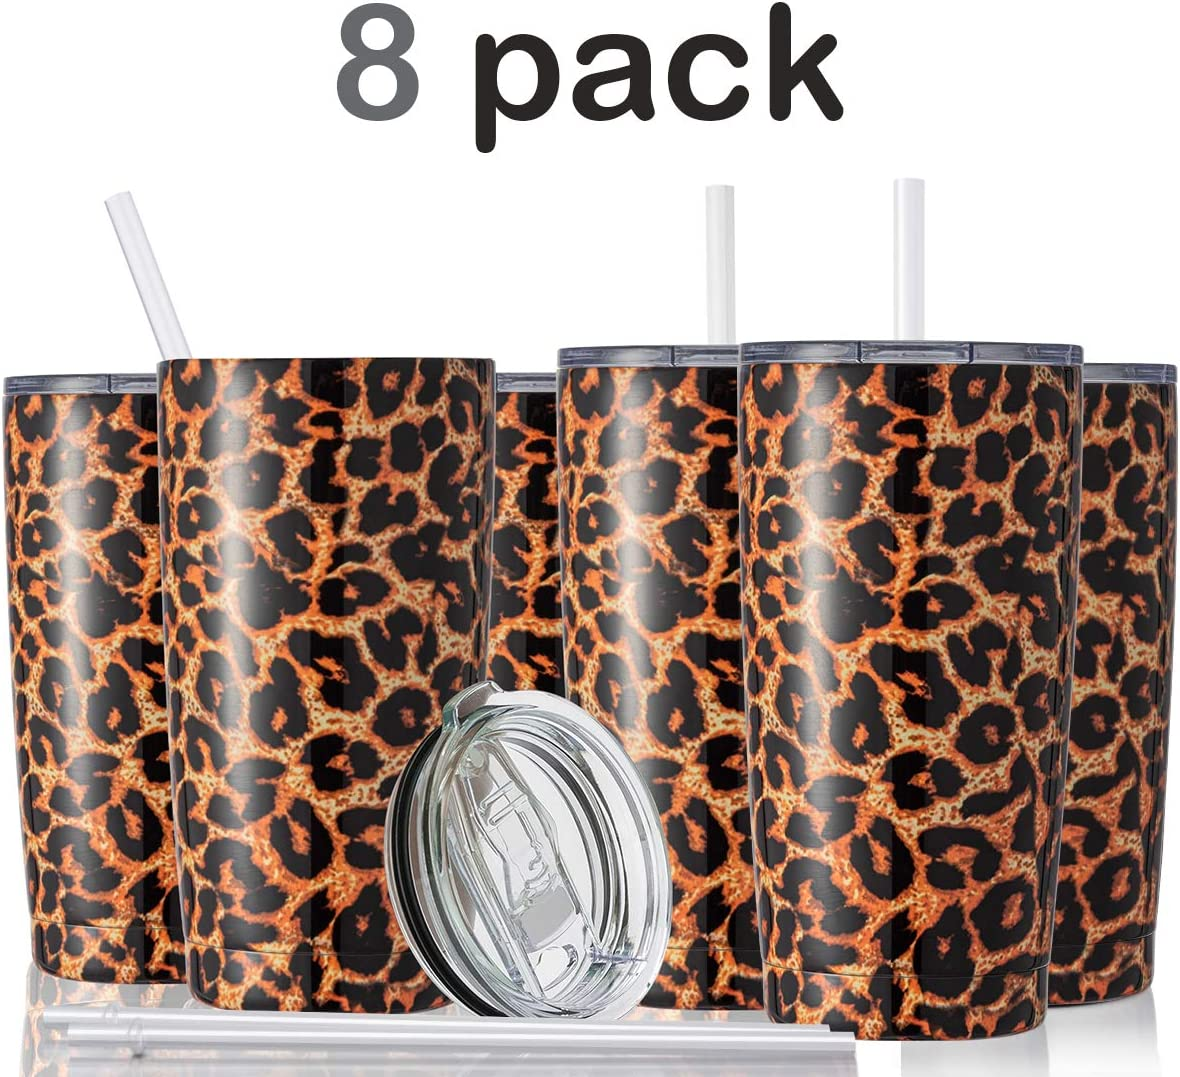 Civago 20oz Insulated Stainless Steel Tumbler, Coffee Tumbler with Lid and Straw, Double Wall Vacuum Travel Coffee Mug, Powder Coated Tumbler Cup (Leopard, 8 Pack)